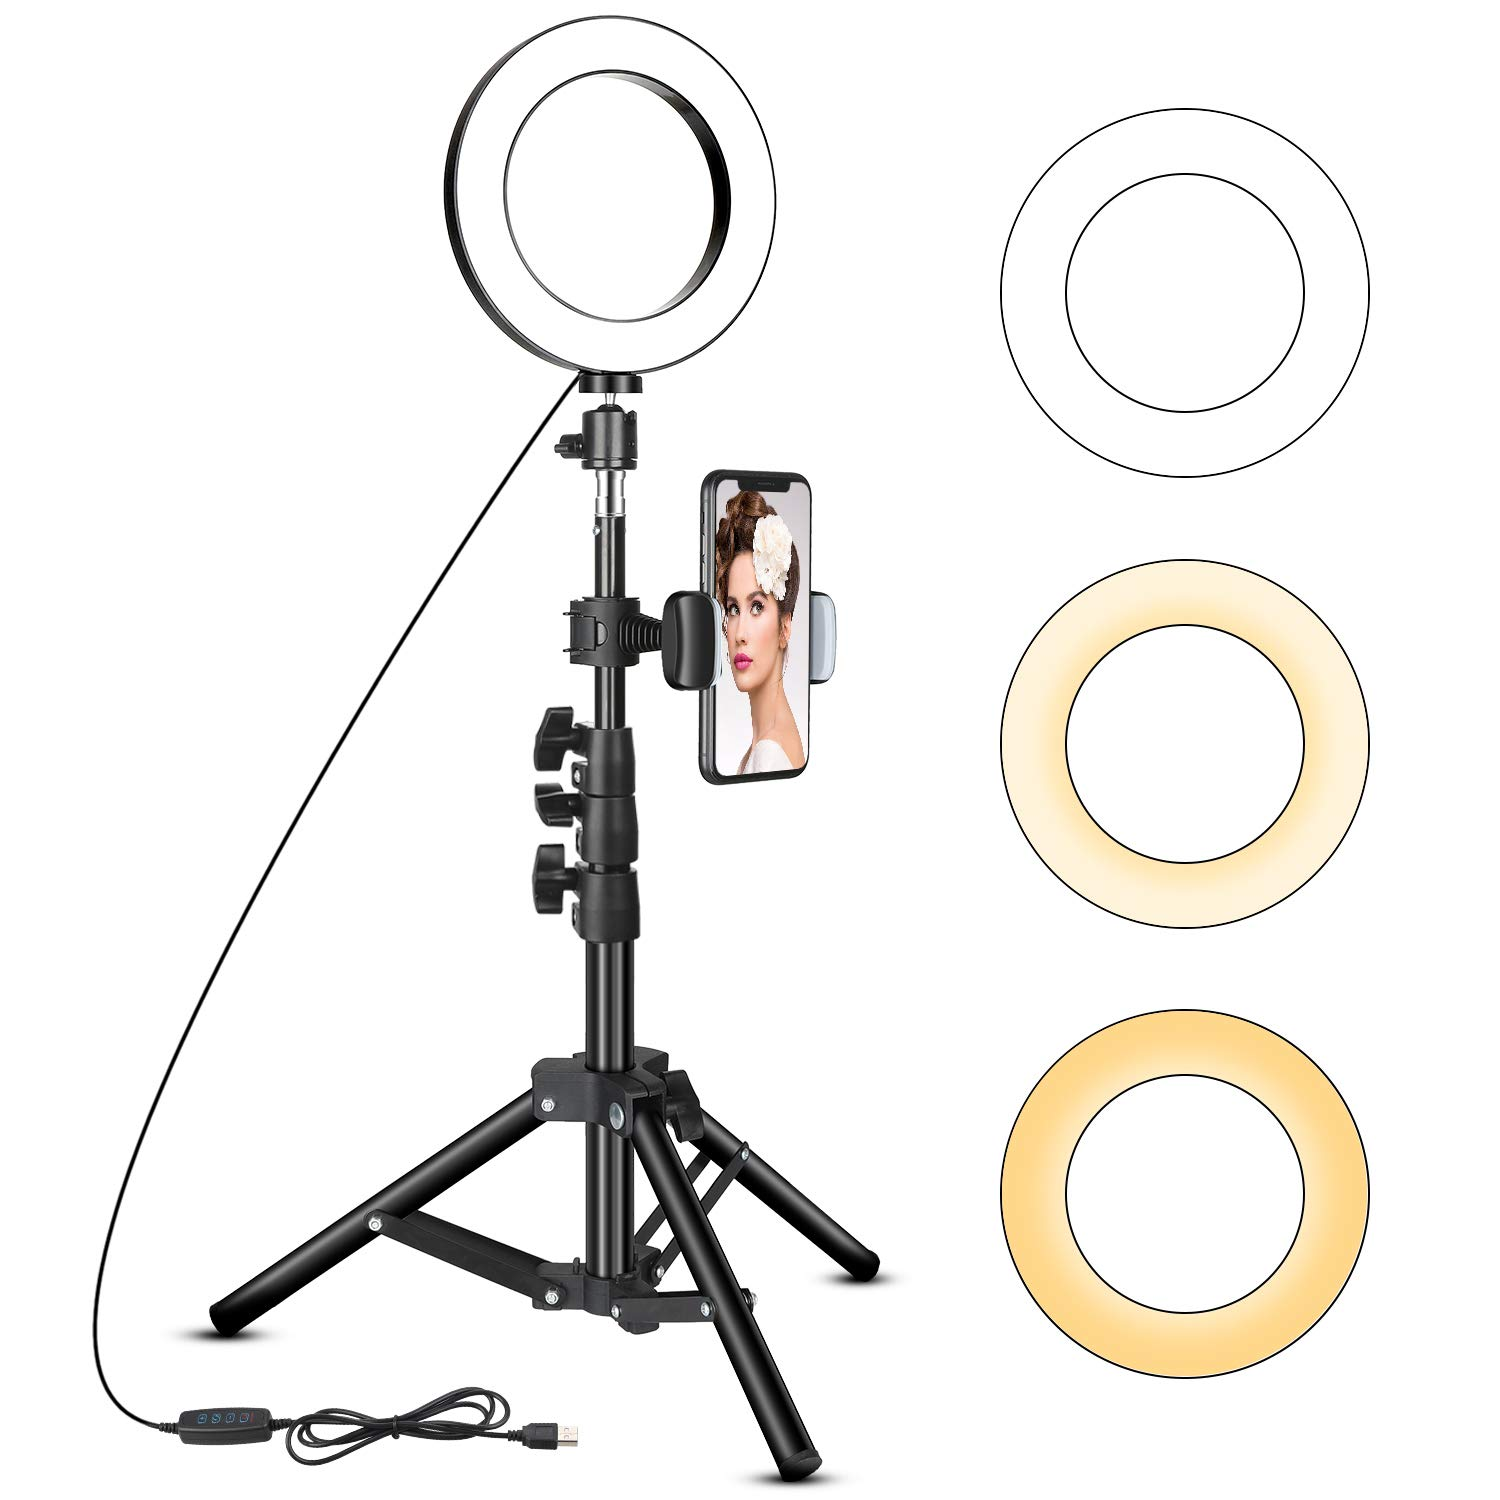 6 inch Ring Light with Tripod Stand - Rovtop LED Camera Selfie Light Ring with iPhone Tripod and Phone Holder for Video Photography Makeup Live Streaming, Compatible with iPhone and Android Phone by Rovtop